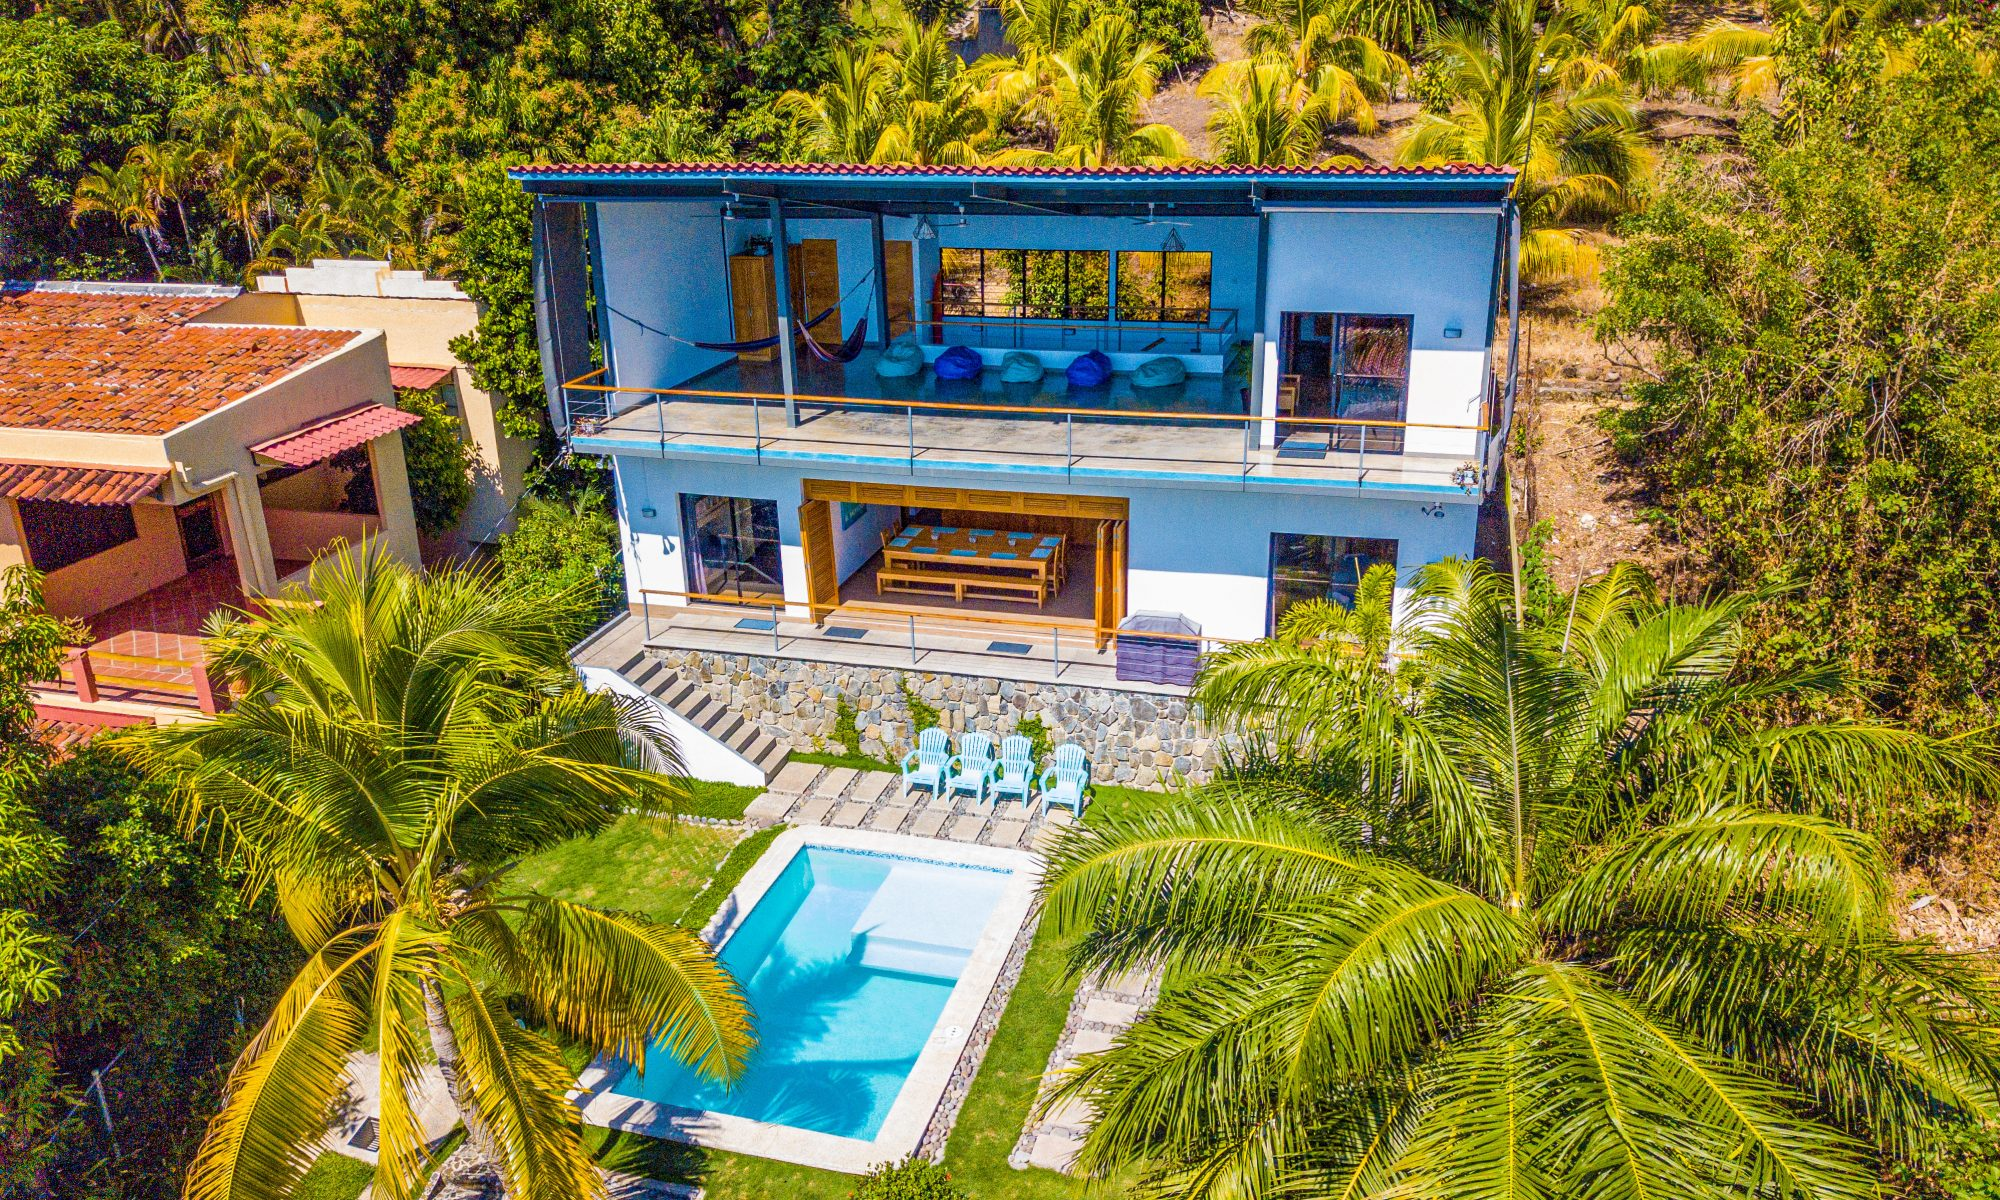 View of the house and the pool from the air